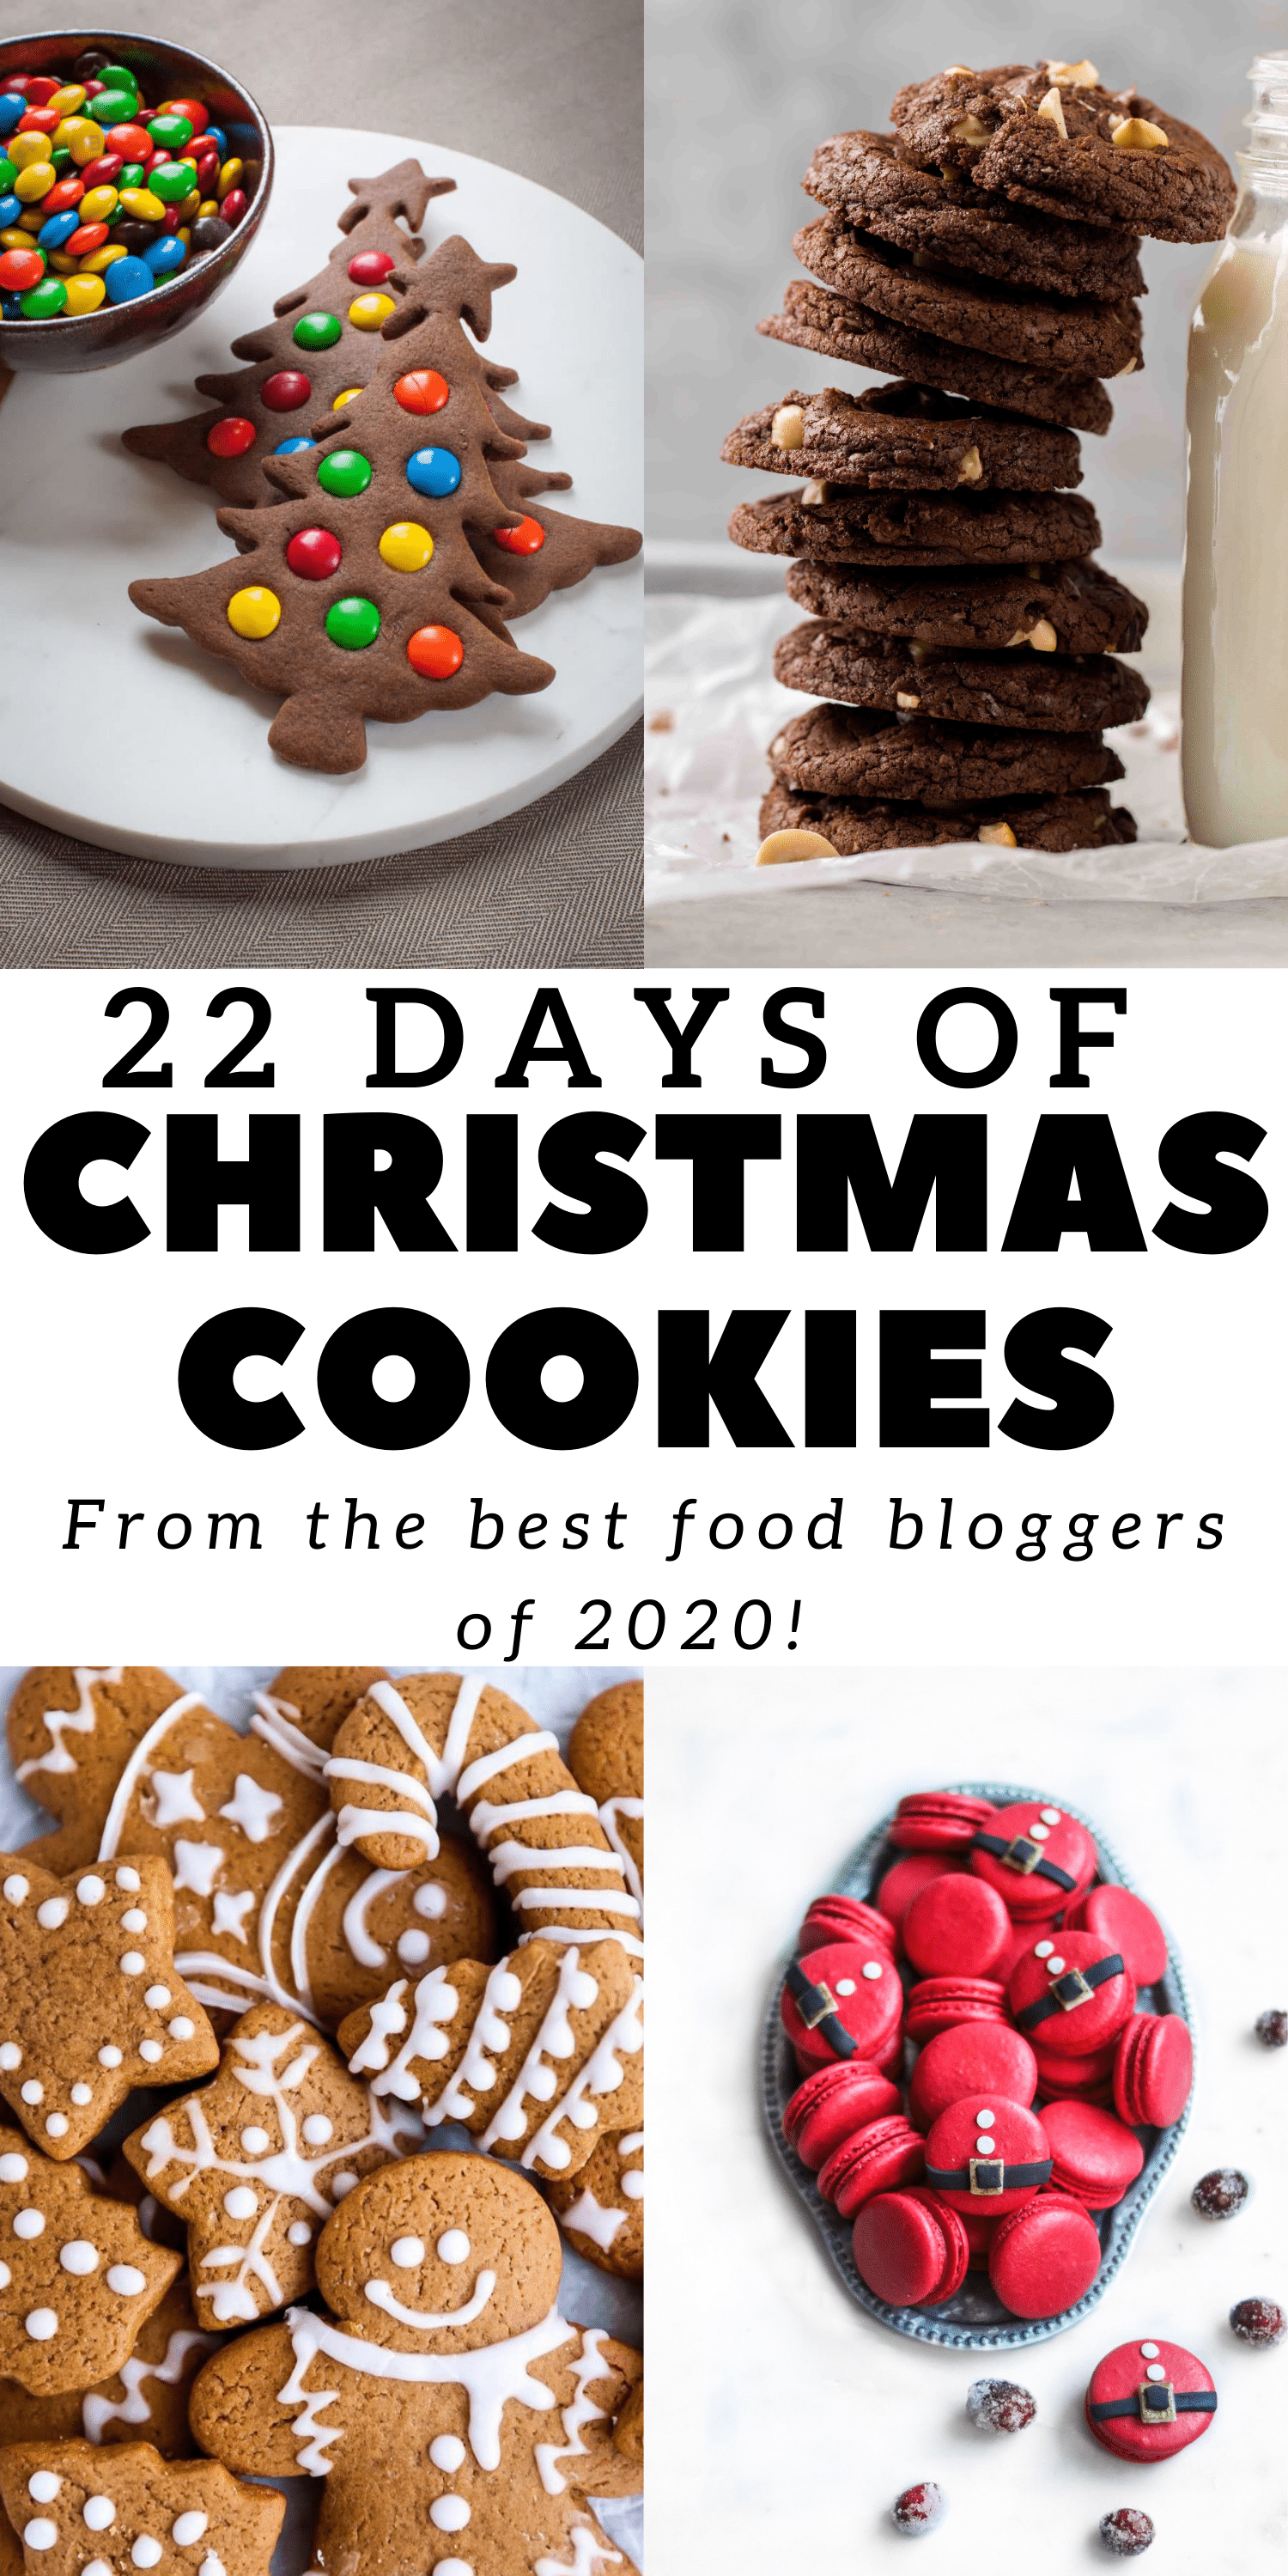 22 days of Christmas cookie recipes